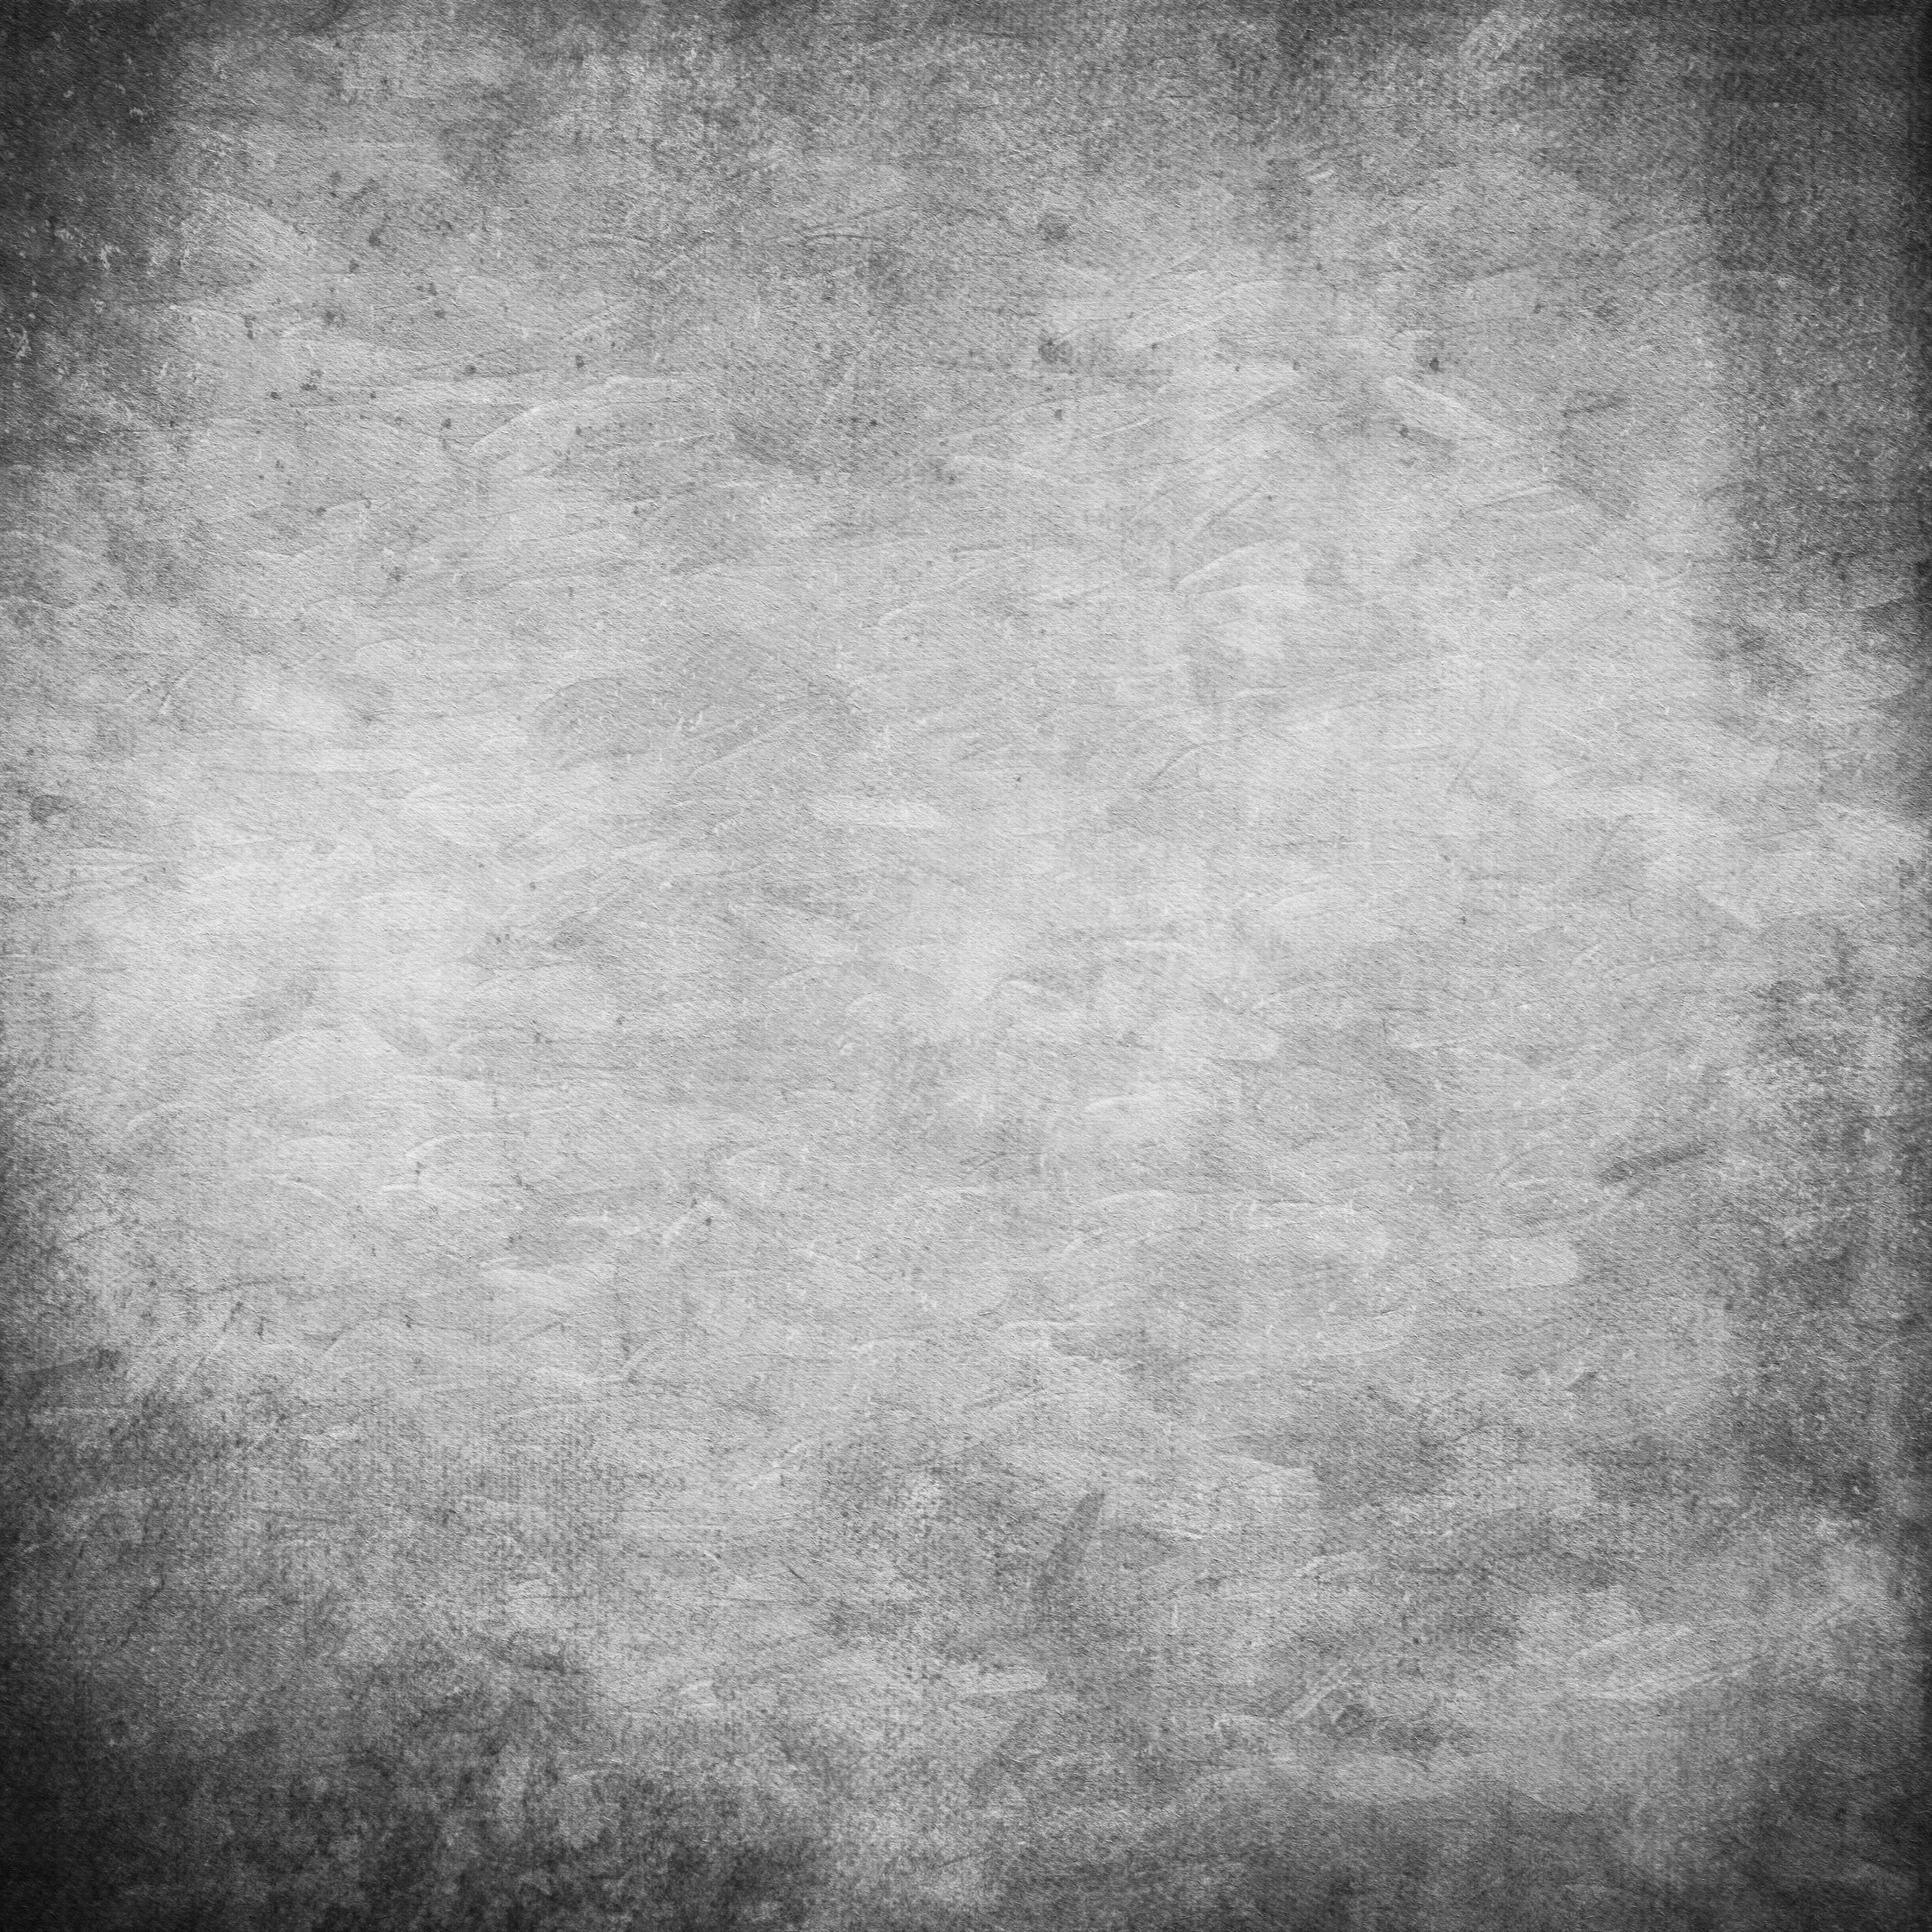 "Free download ~ commercial use grunge texture in jpg format, 300dpi and sized 12""x12"" courtesy of www.hgdesigns.co #freedownload #freetexture #commercialuse"